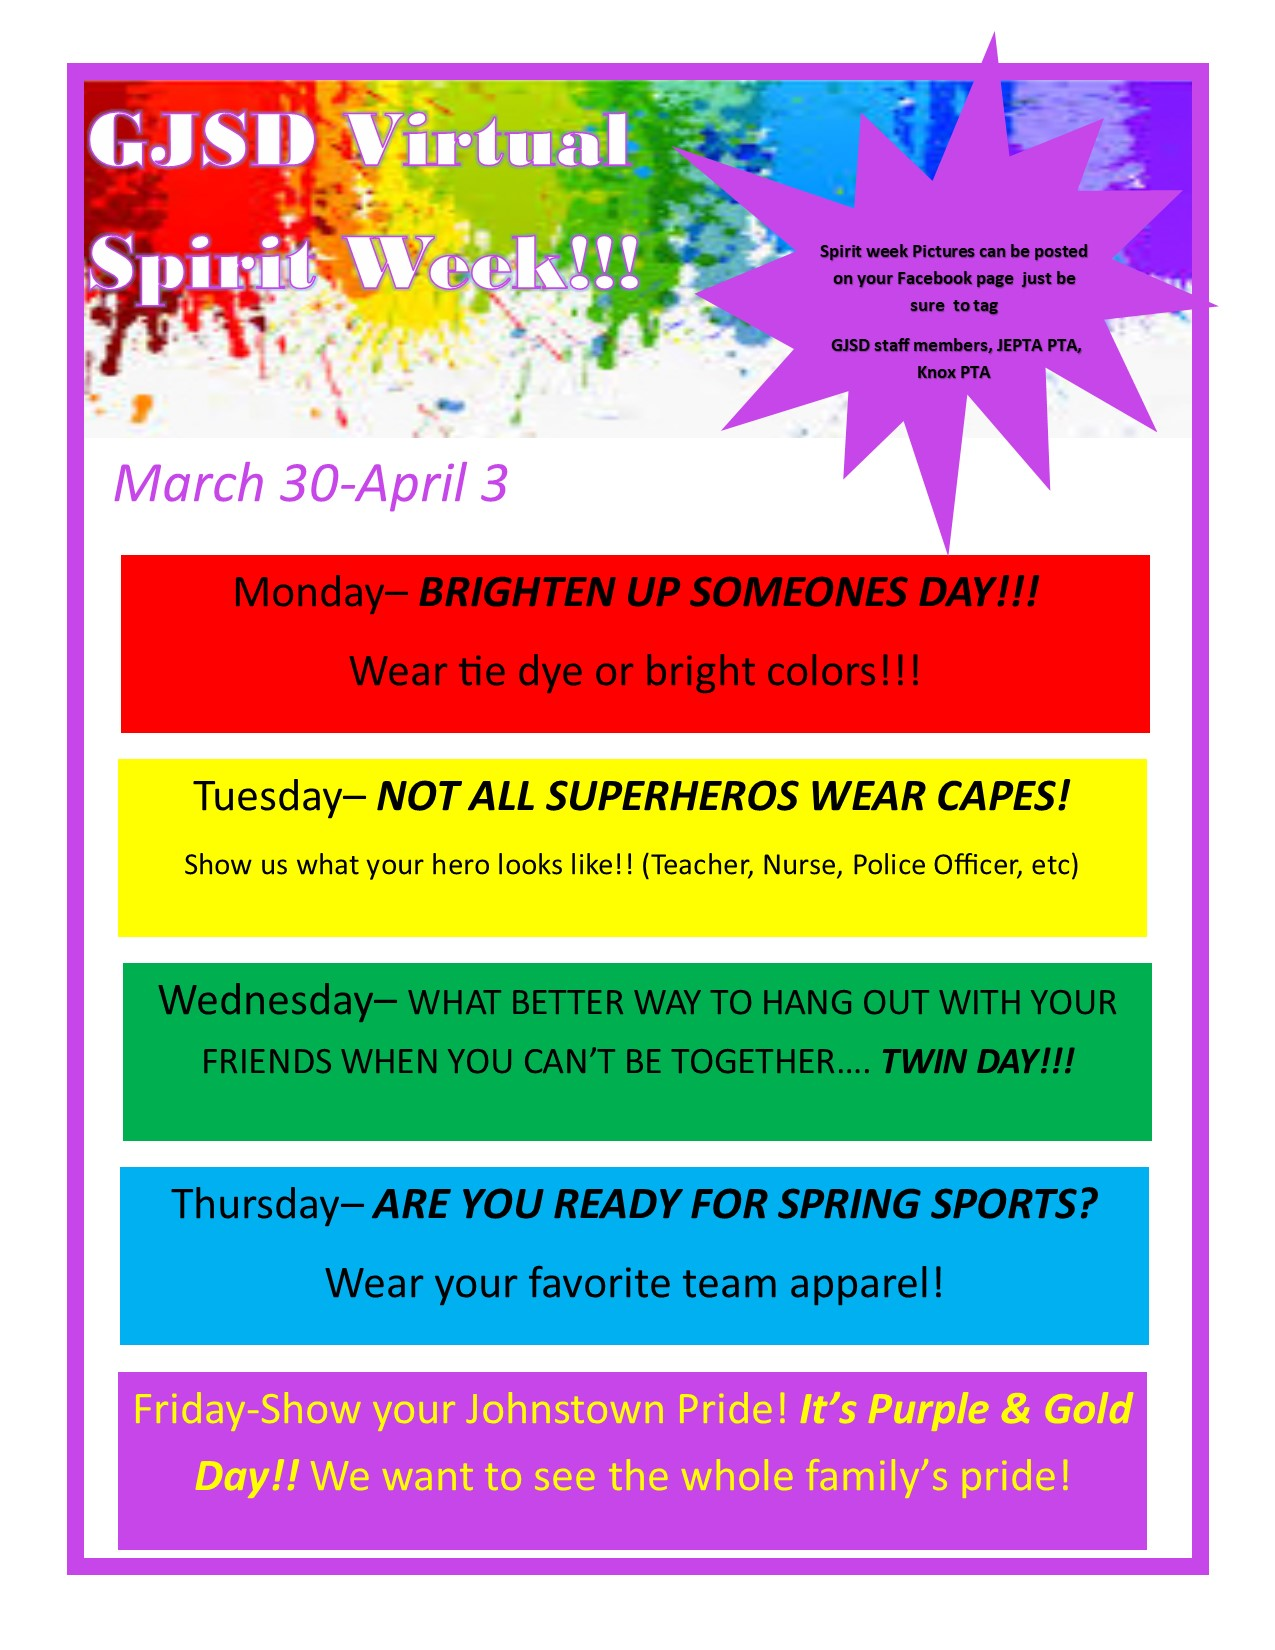 GJSD Virtual Spirit Week March 30 - April 3. Spirit week pictures can be posted on your facebook page just be sure to tag gjsd staff members, jepta pta, knox pta. Monday wear bright colors; Tuesday dress like your hero (teacher, nurse, police officer, etc), Wednesday dress like your friend even though you can't be together twin day; Thursday get ready for springs sports wear team apparel; Friday show your Johnstown Pride it's purple & gold day